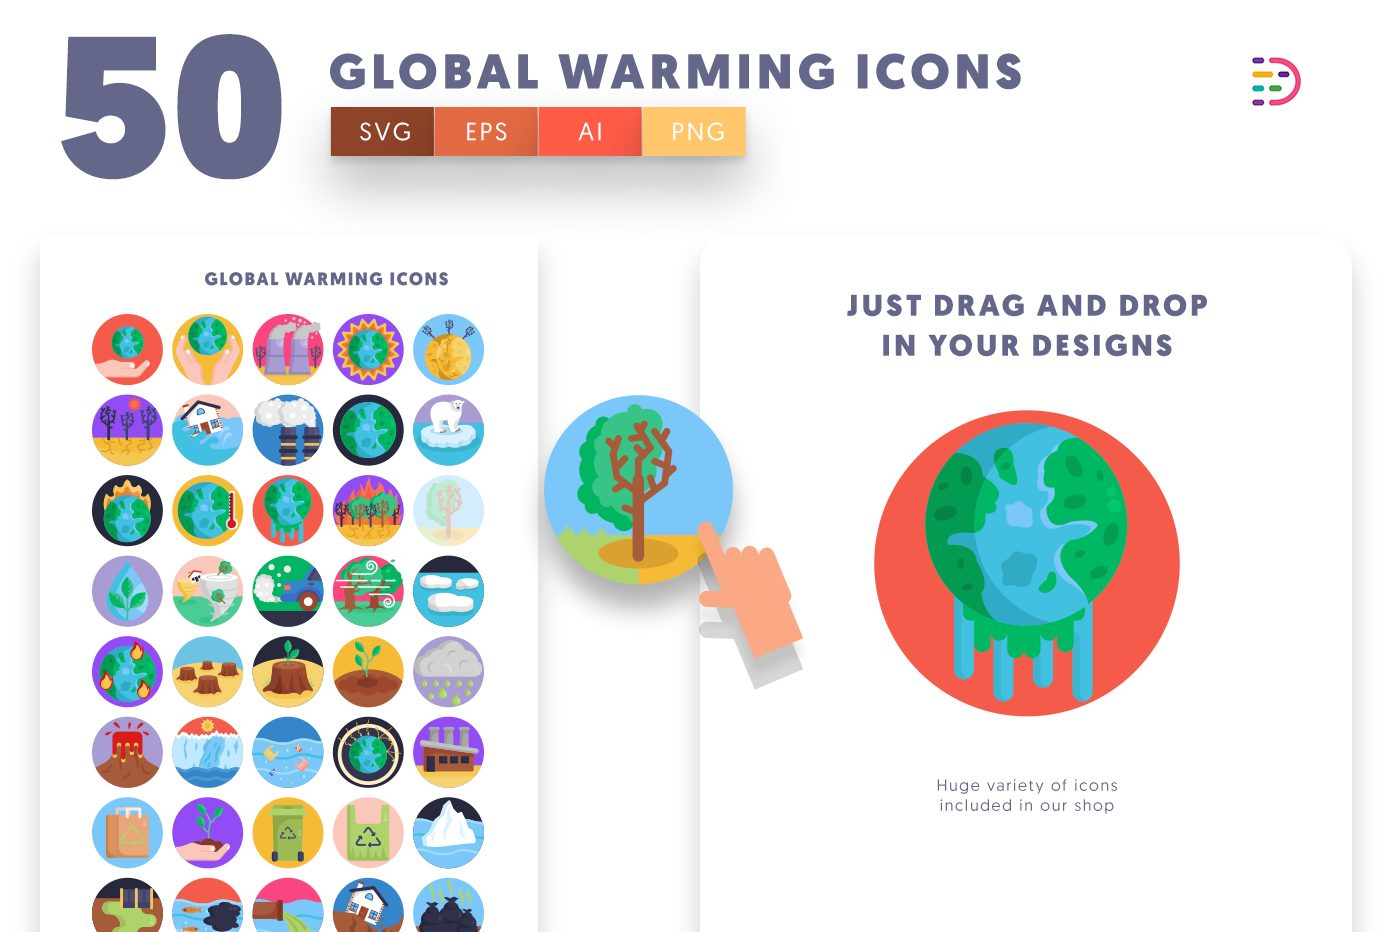 Drag and drop vector 50 Global Warming Icons